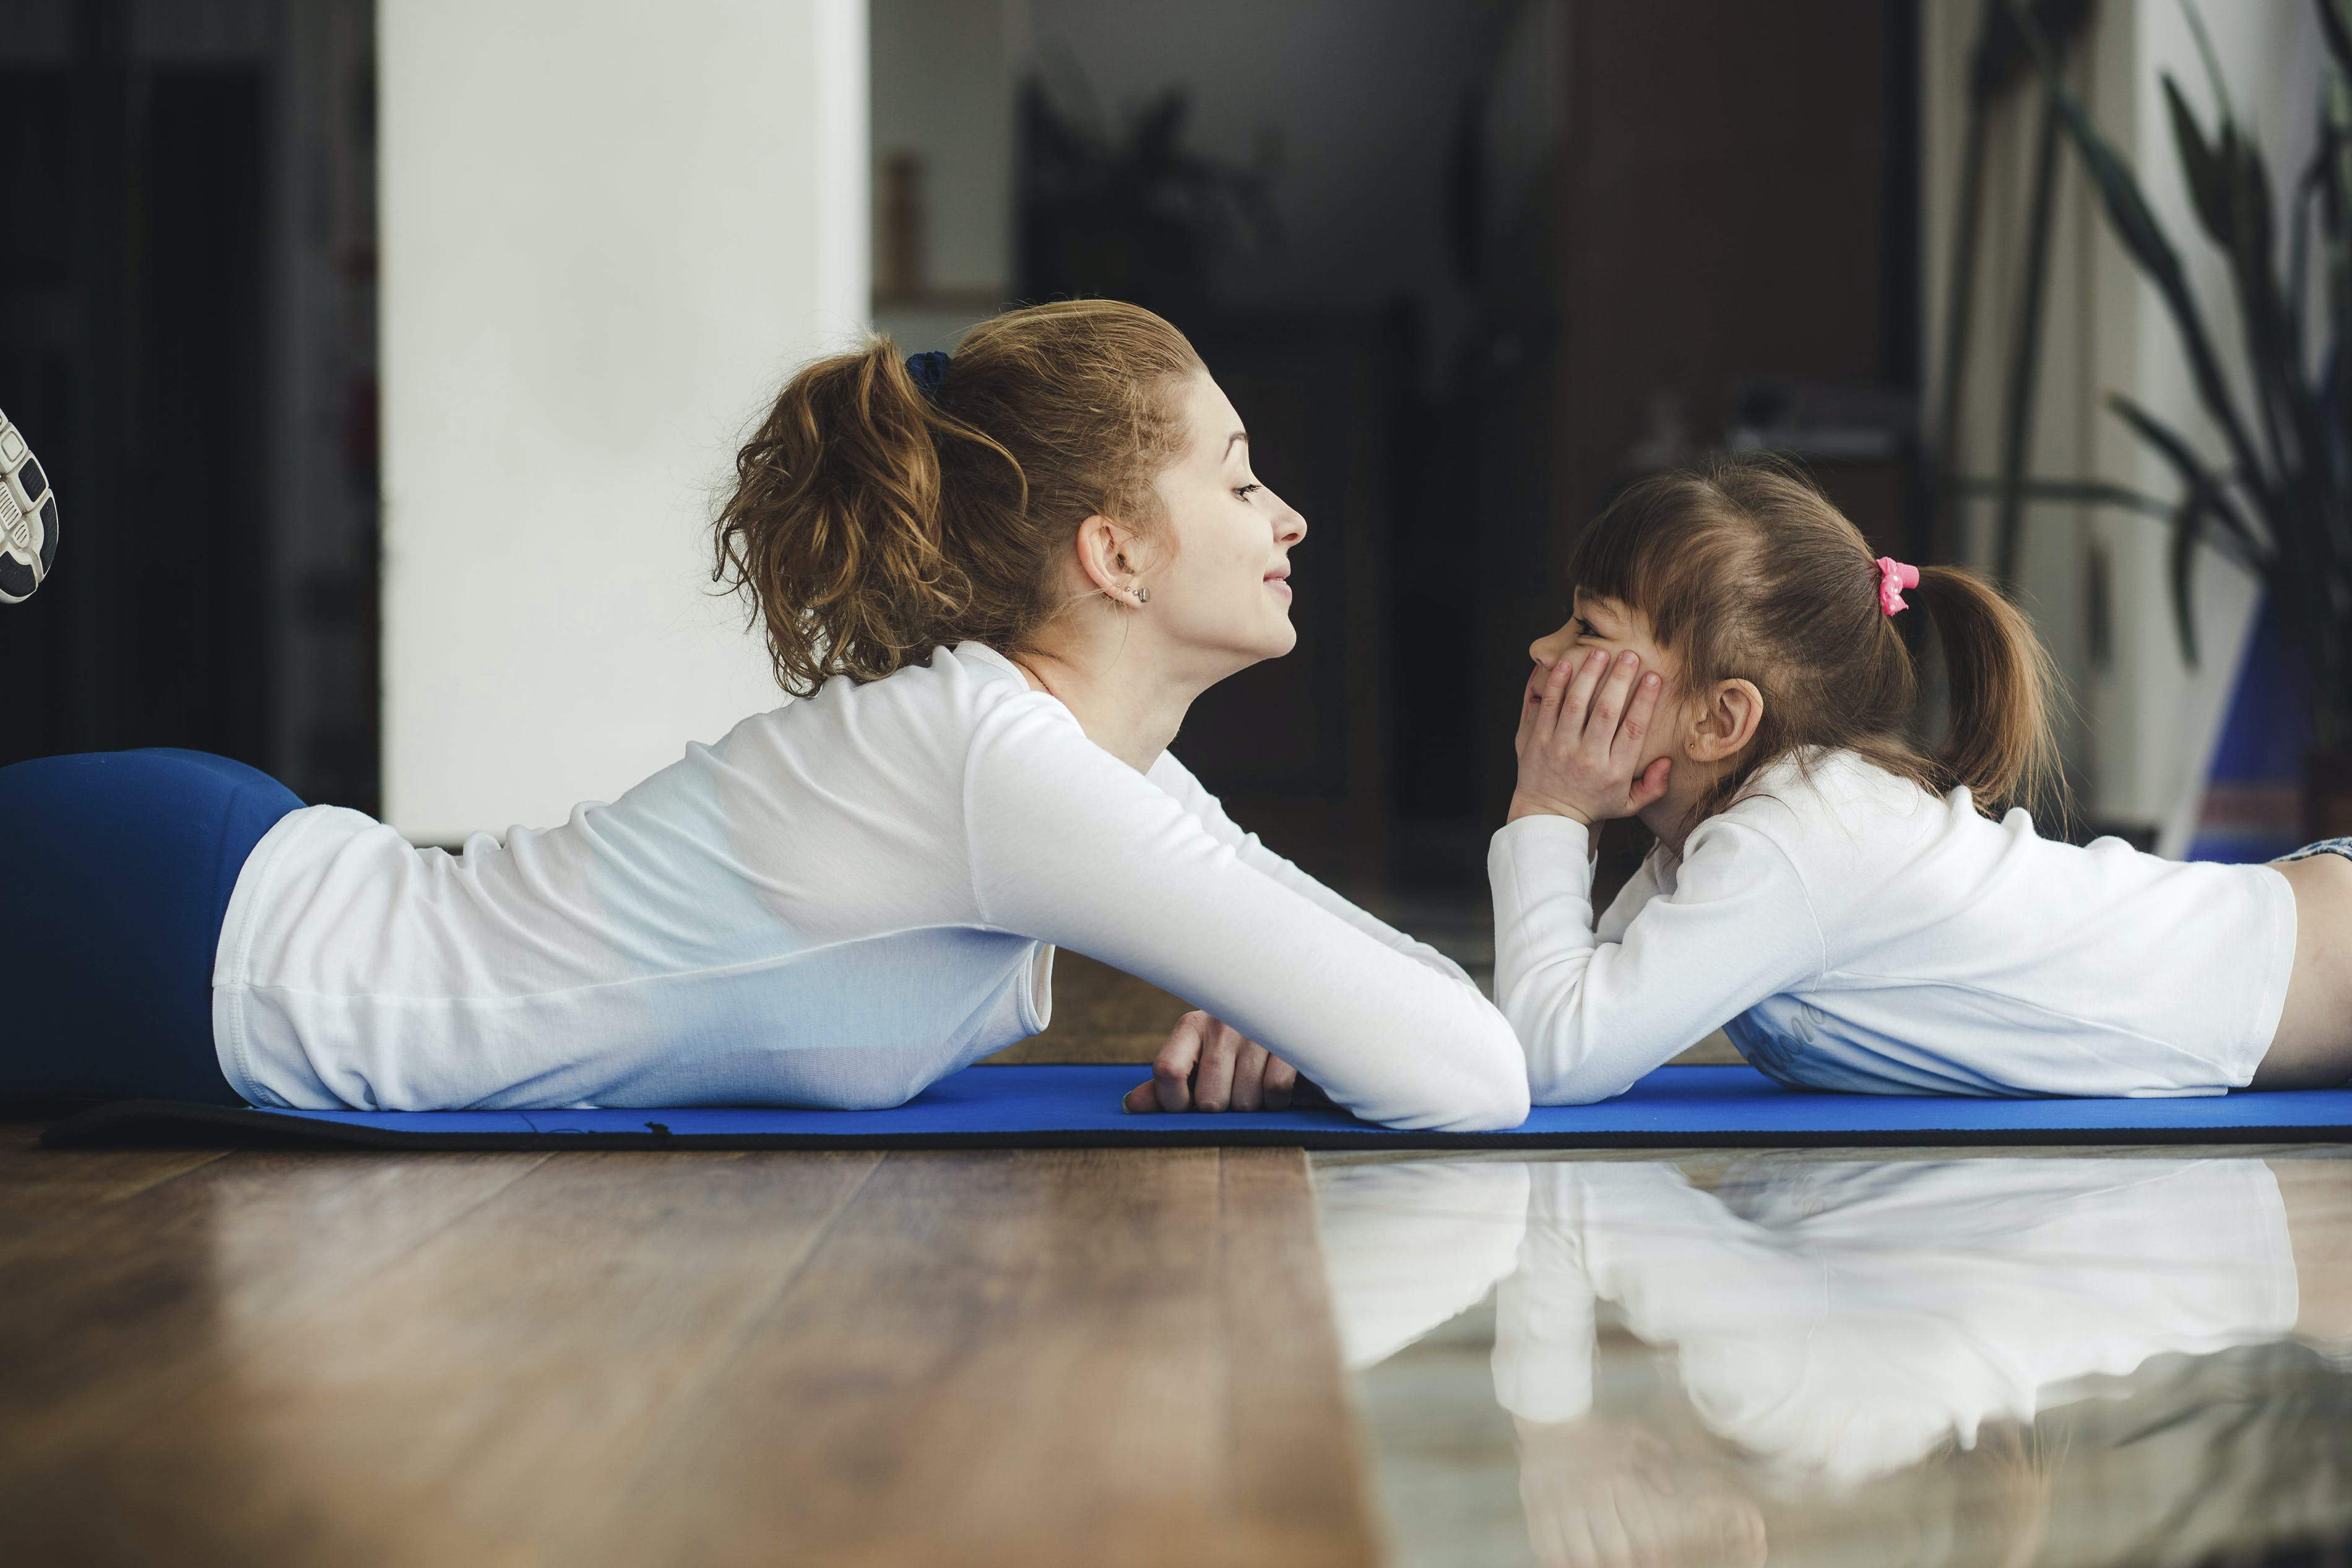 Get Moving! Becoming Physically Active With Your Kids